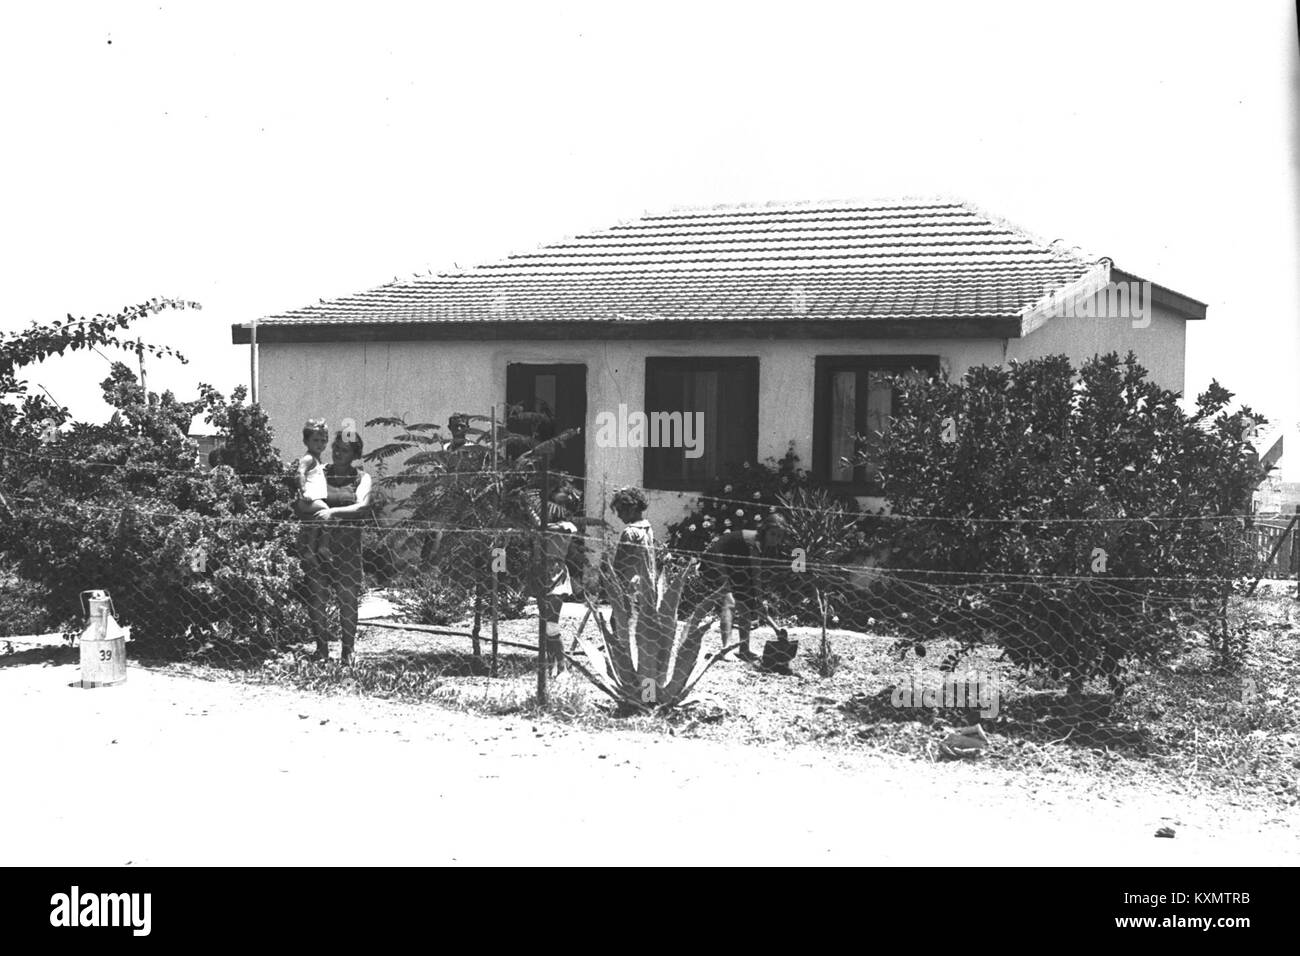 Farmers House Black and White Stock Photos & Images - Alamy